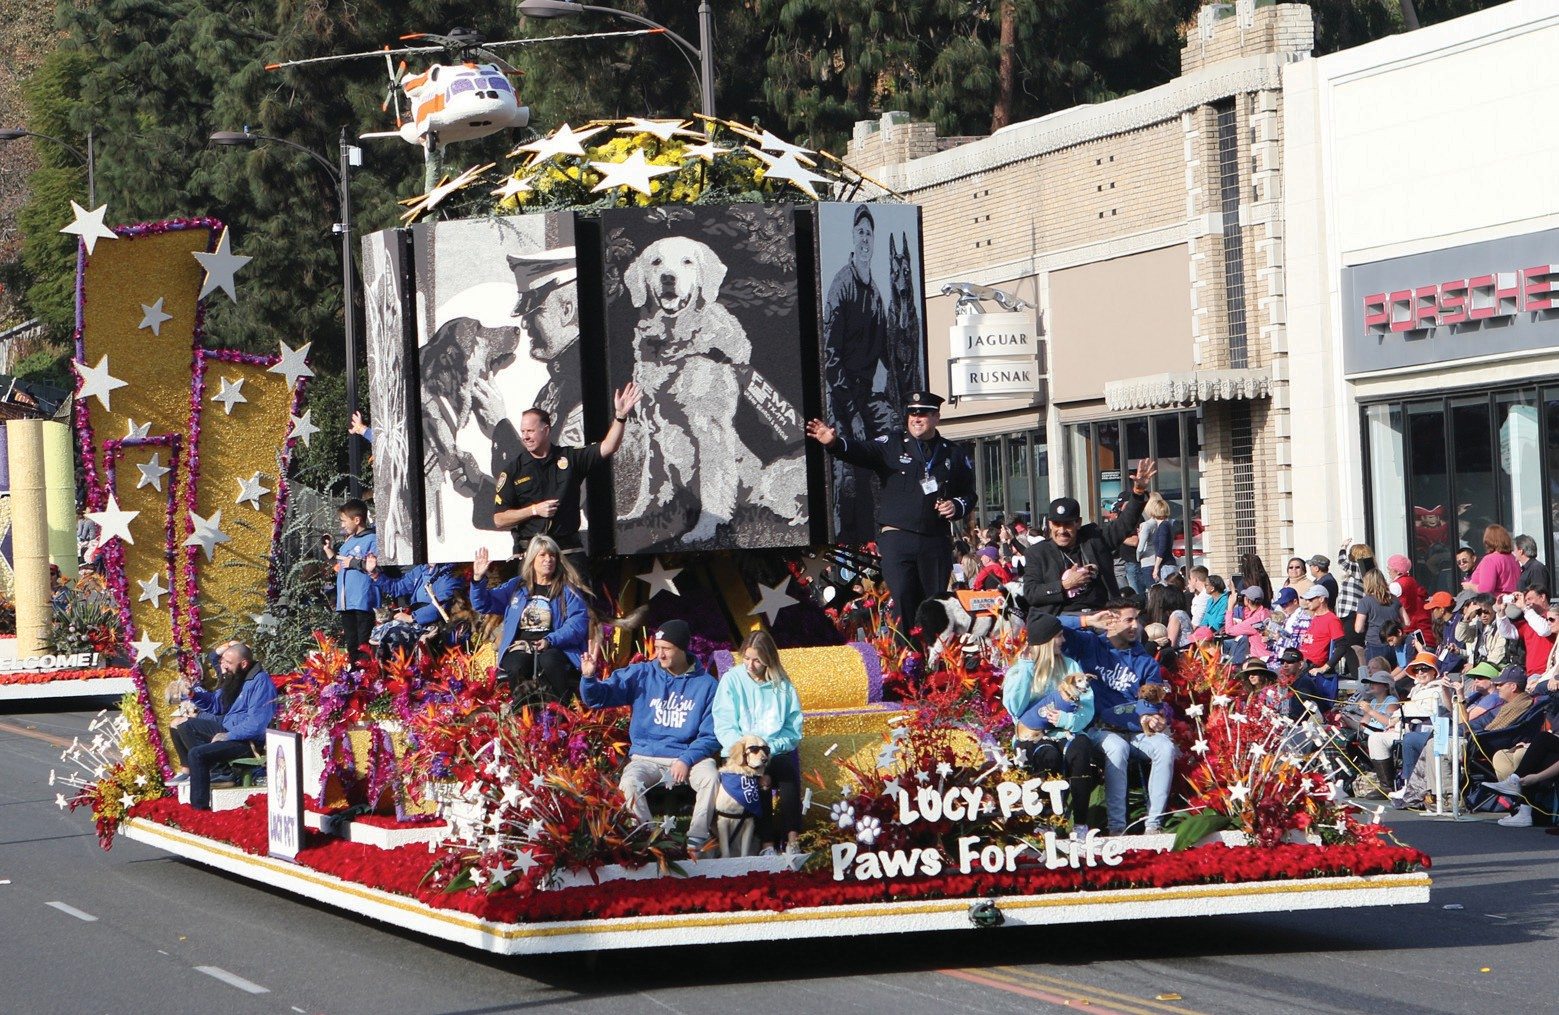 HOPE FLOATS—Two views of the Lucy Pet Foundation'sfloat in this year's Rose Parade, an homage to special animals that make a difference in people's lives.